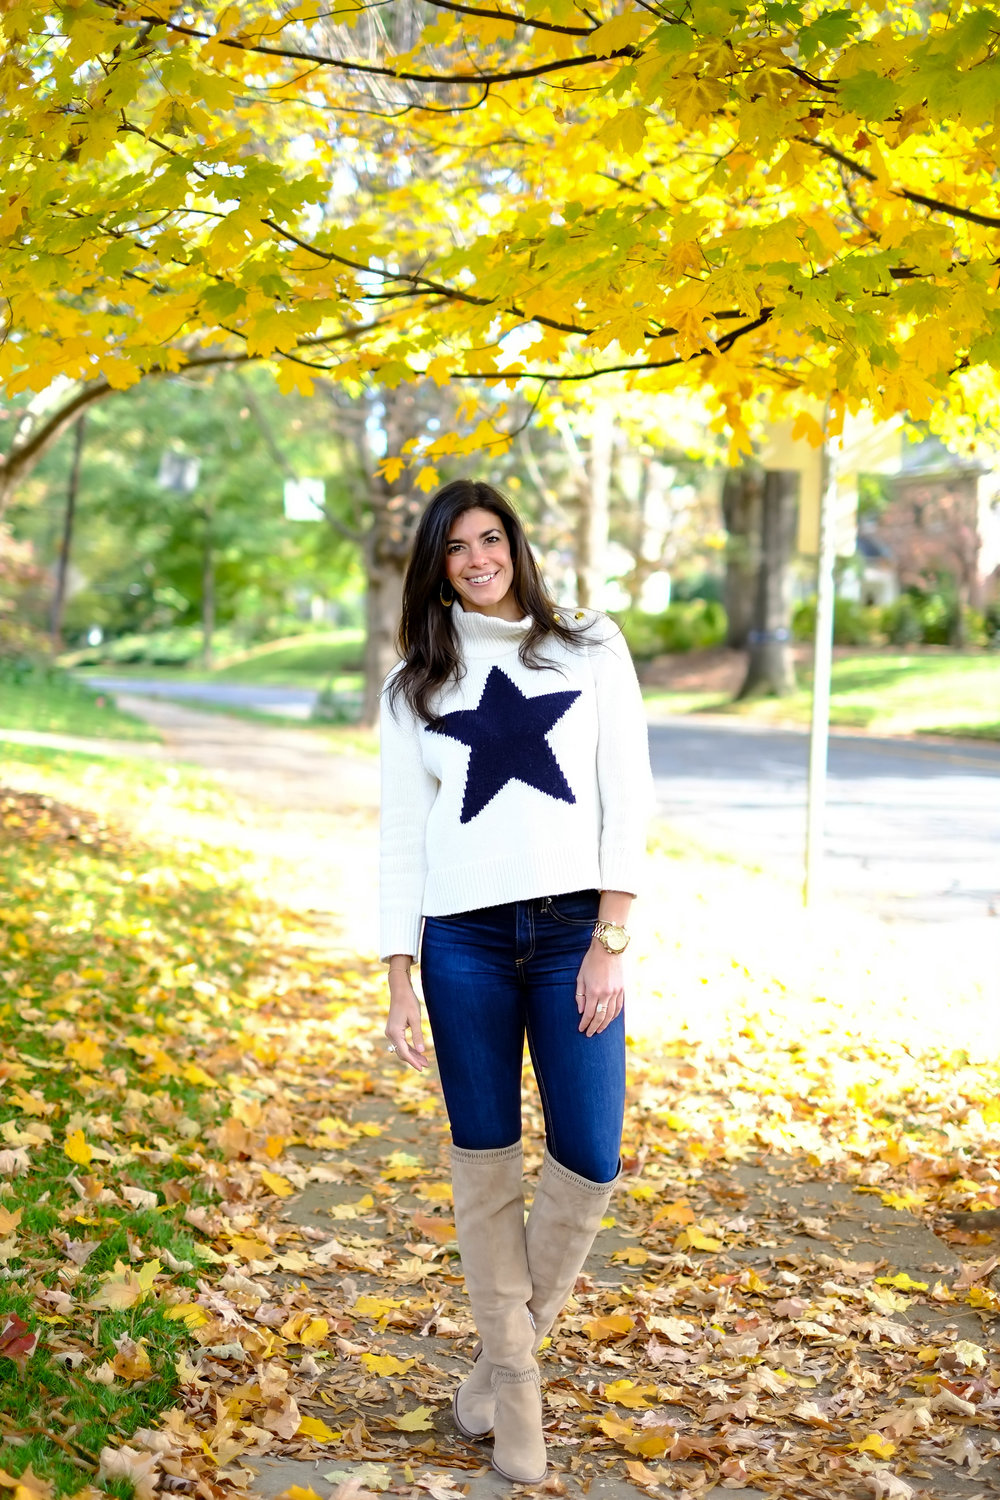 Kate-spade-cropped-star-sweater-lauren-schwaiger-style-blog.jpg